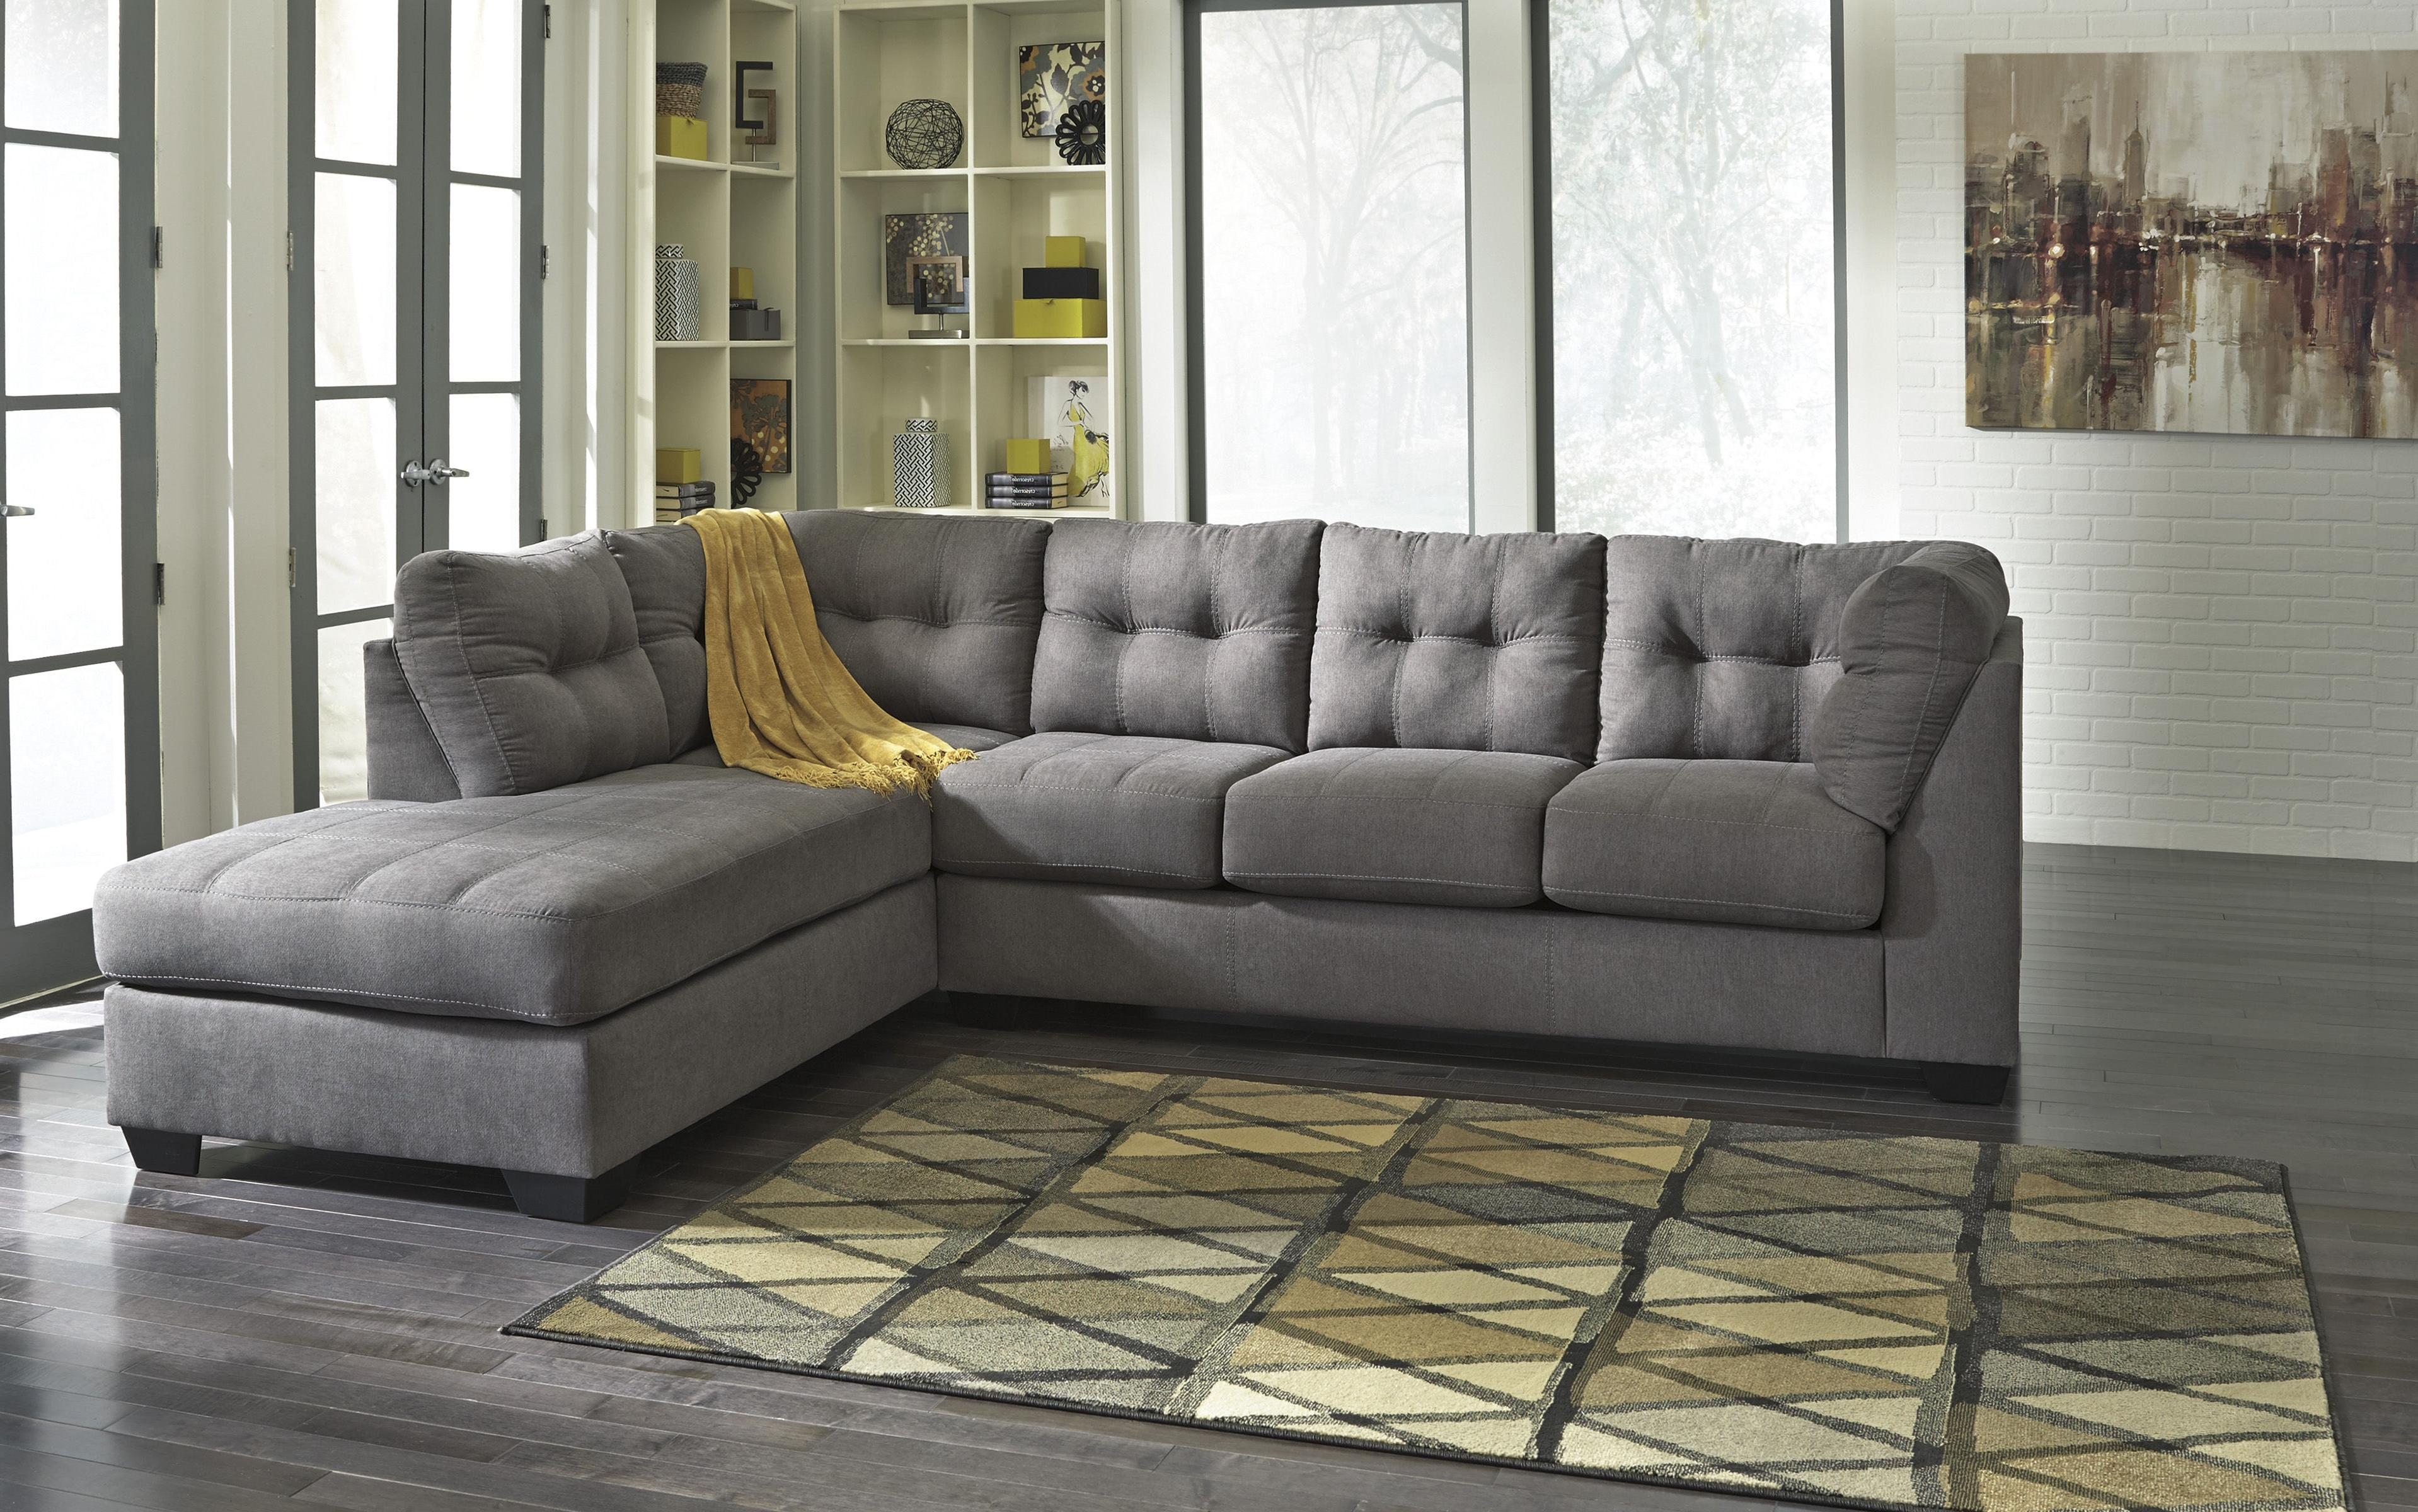 Fashionable Ashley Furniture Maier Charcoal Raf Chaise Sectional (View 2 of 15)